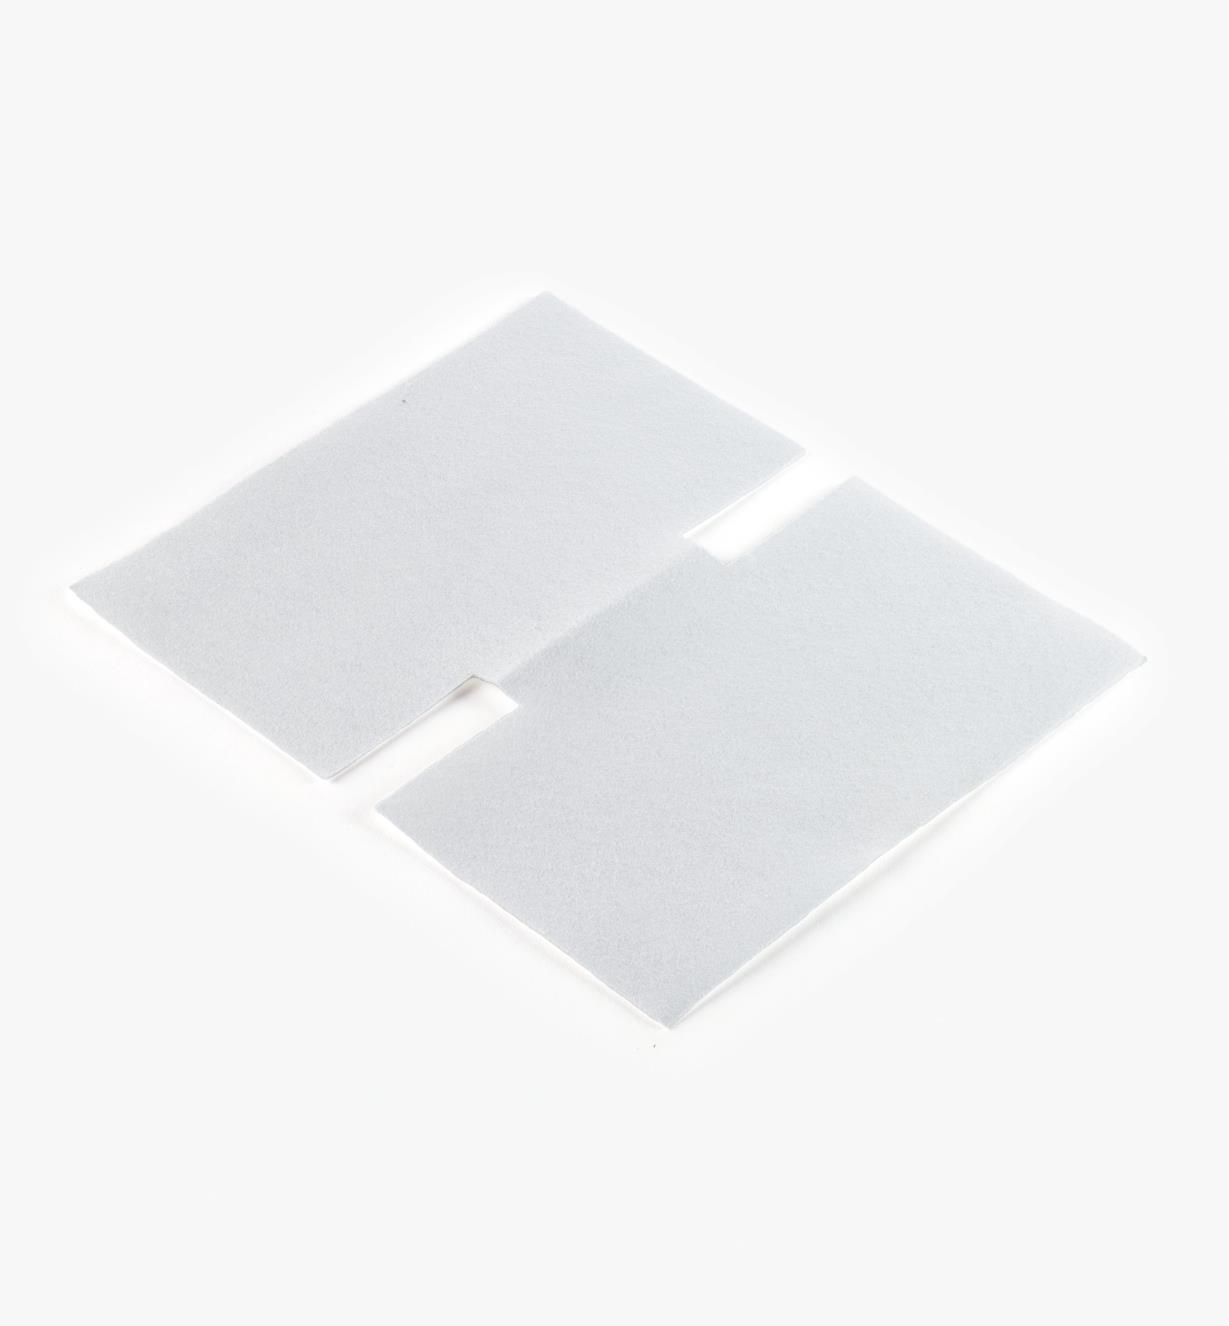 AA716 - Replacement Capillary Mat, Small